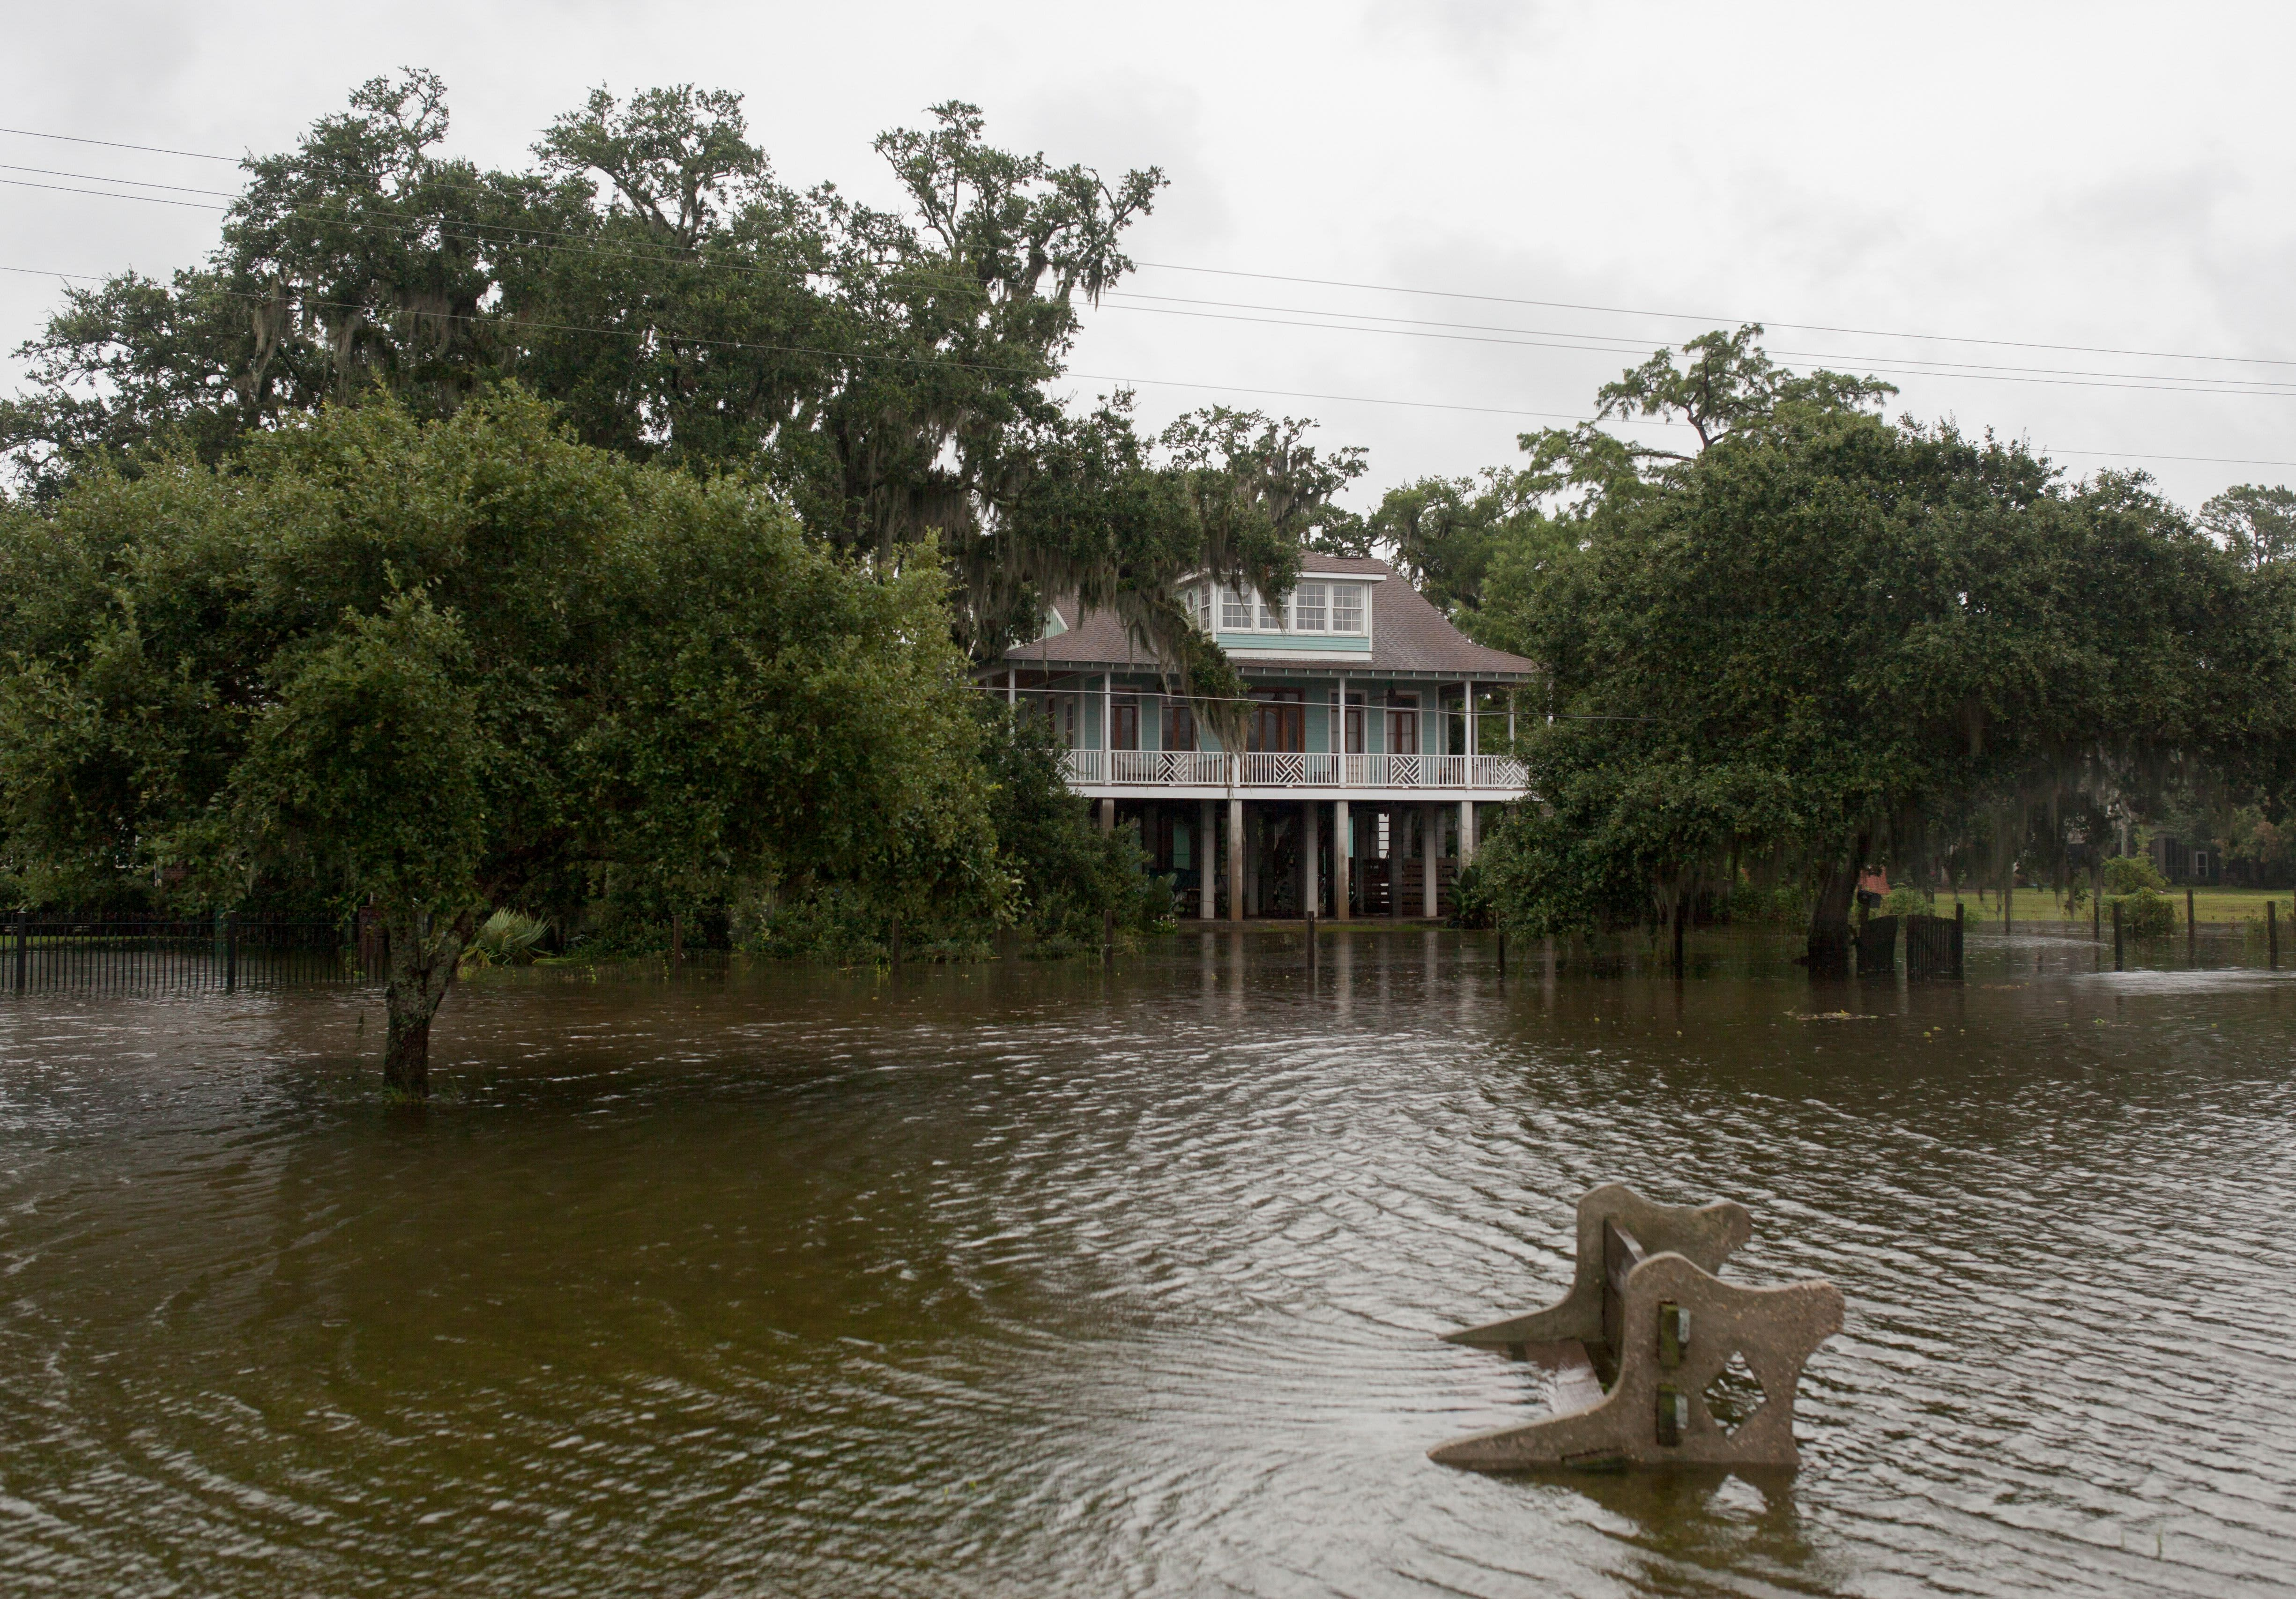 Barry lost some bite, but these 10 cities could lose billions in housing to floods by 2050